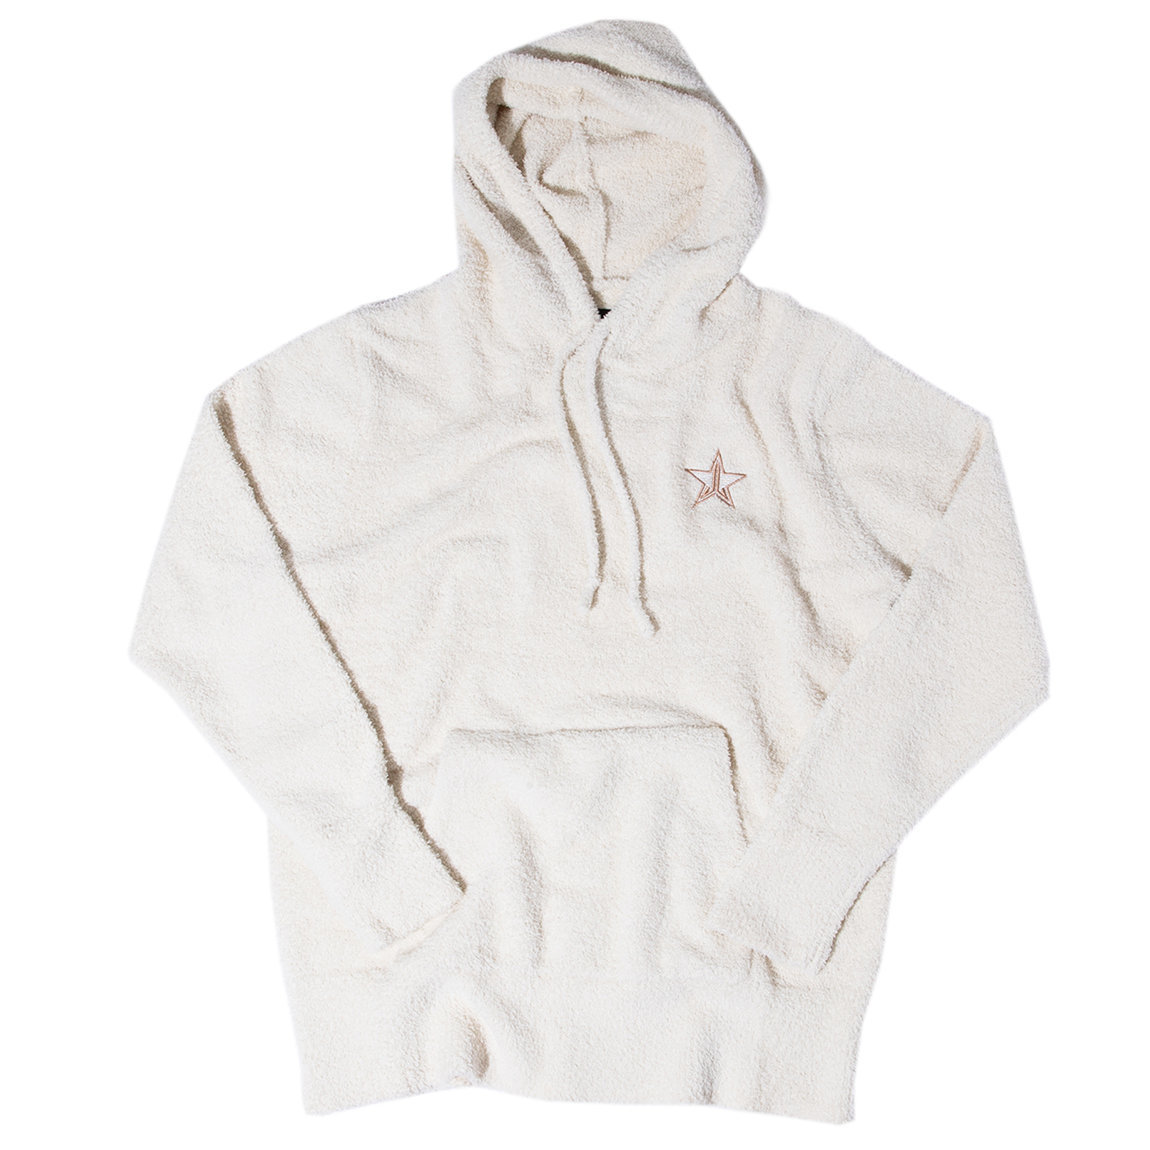 Jeffree Star Cosmetics White Teddy Pullover Small alternative view 1 - product swatch.